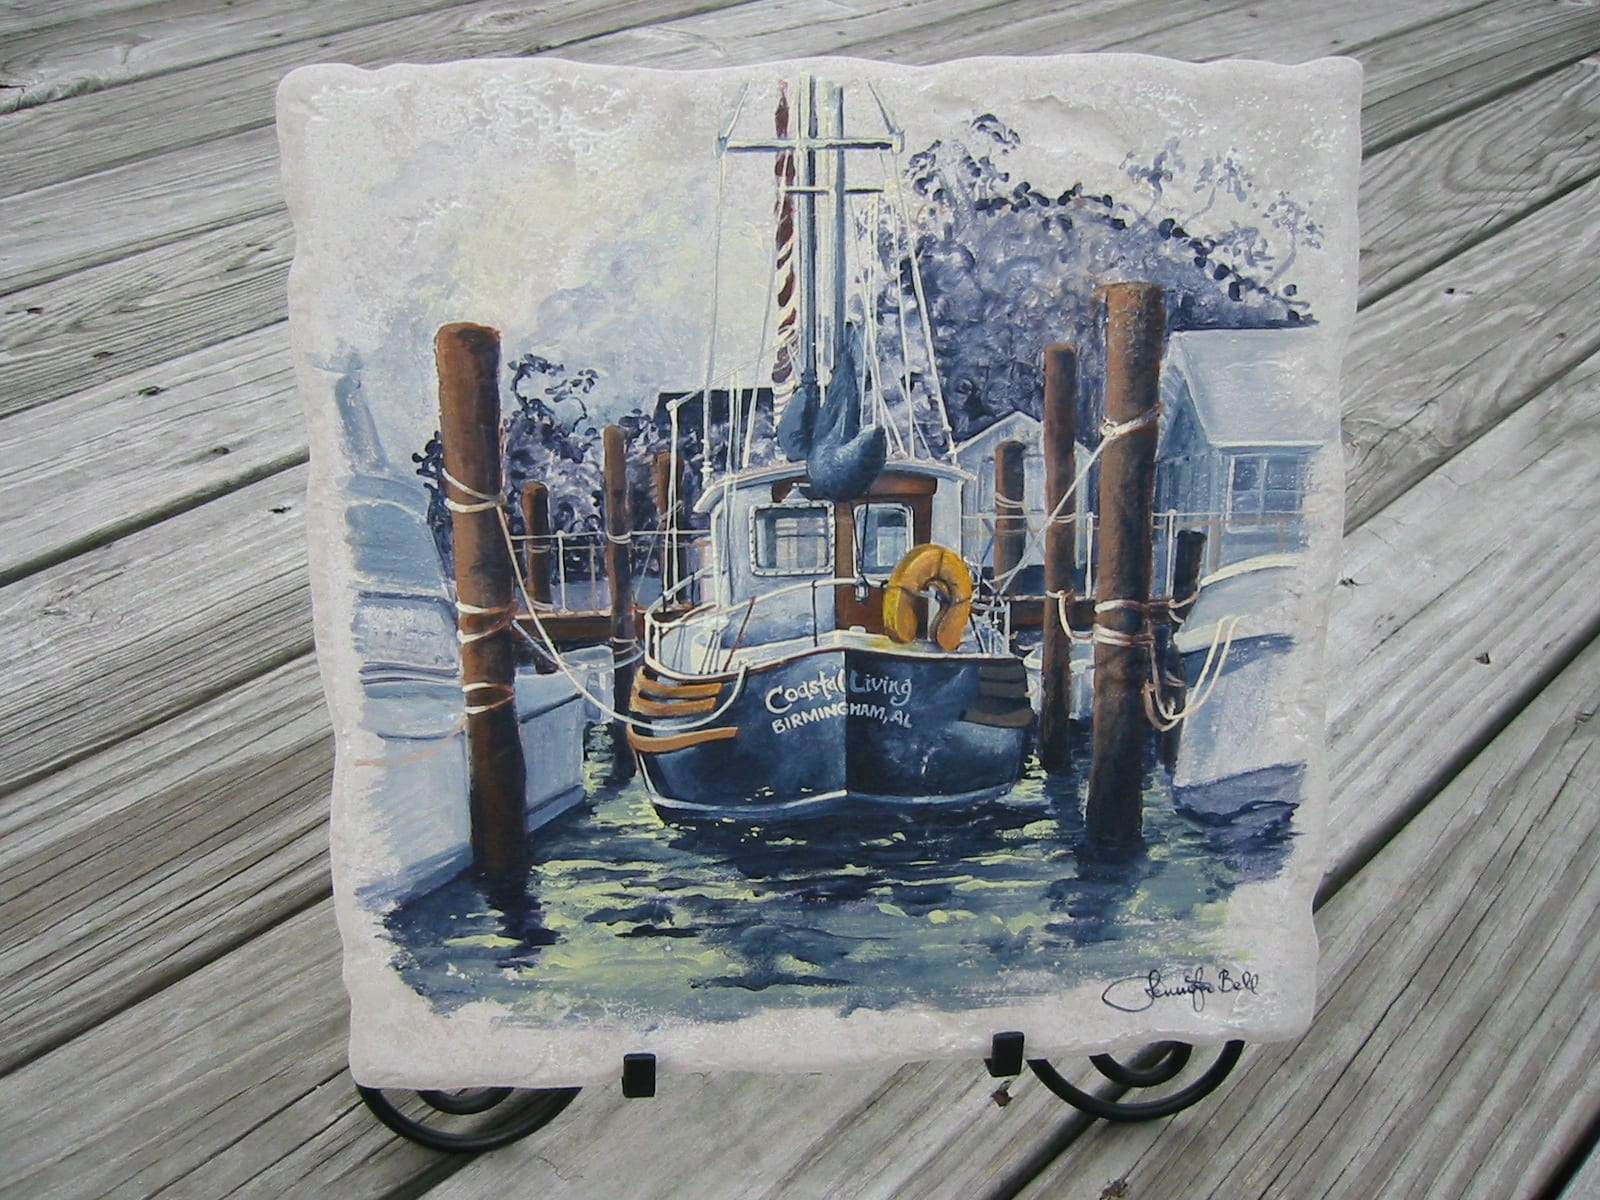 Artist Jen Bell's Sailboat Commission